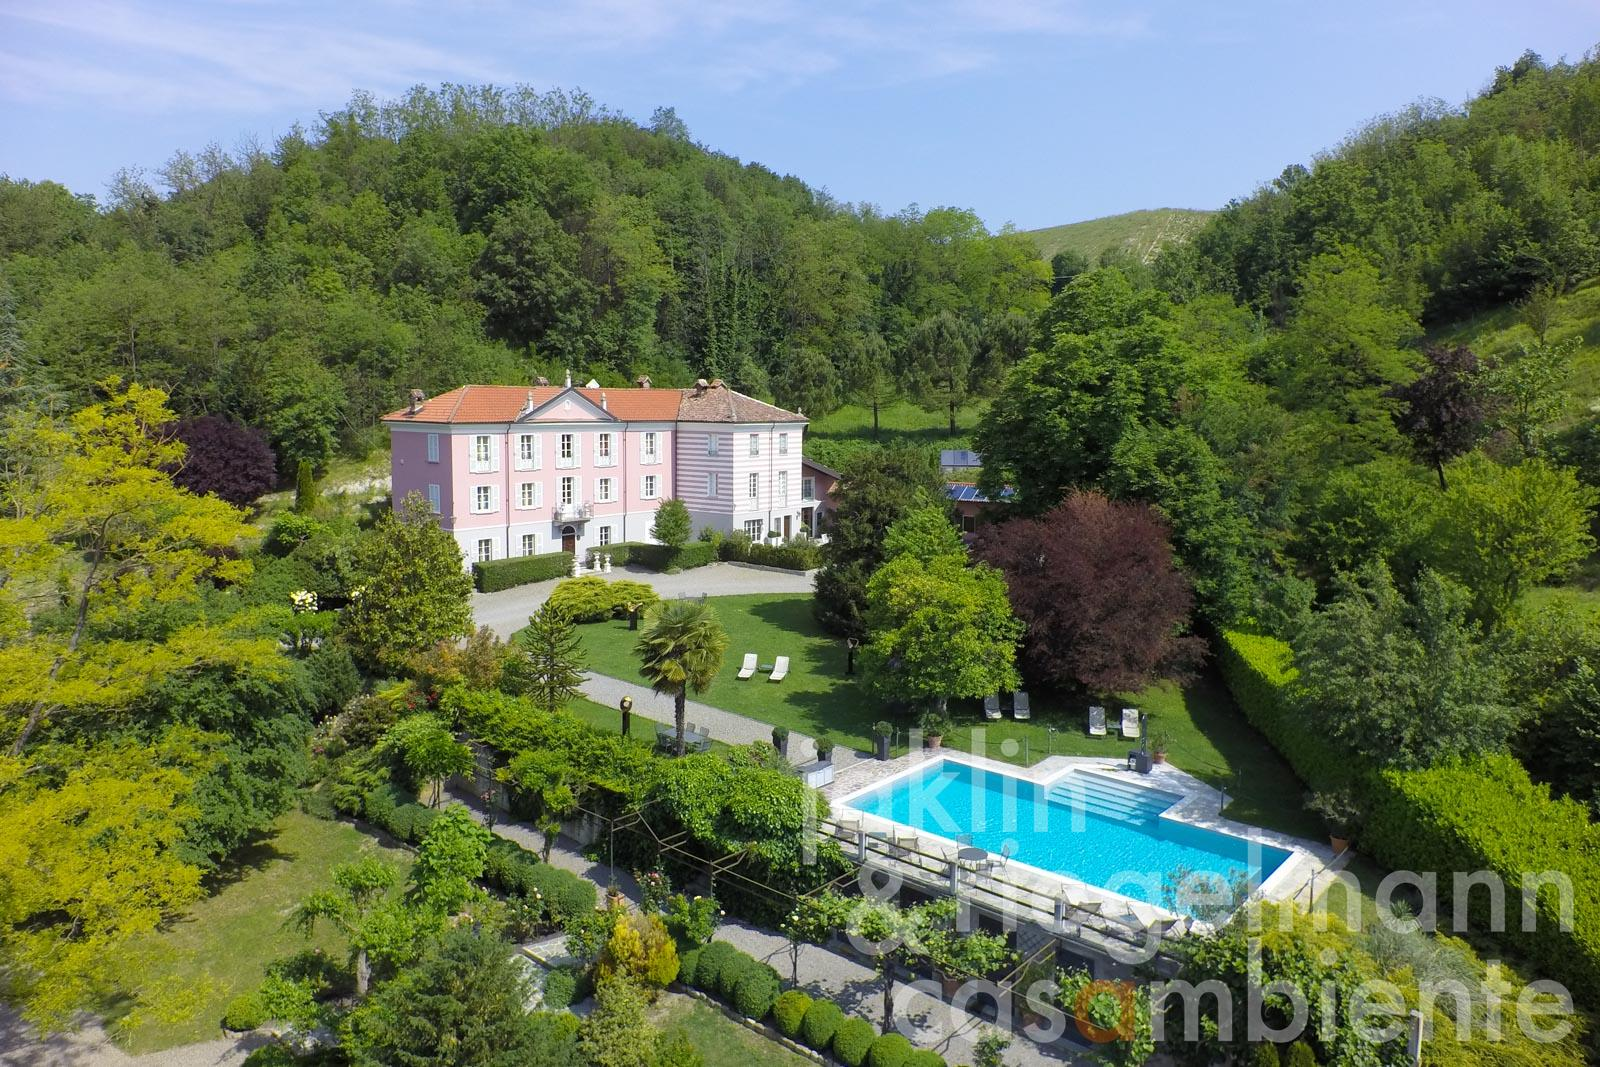 The historic and meticulously restored 18th century villa for sale close to Acqui Terme in Piedmont